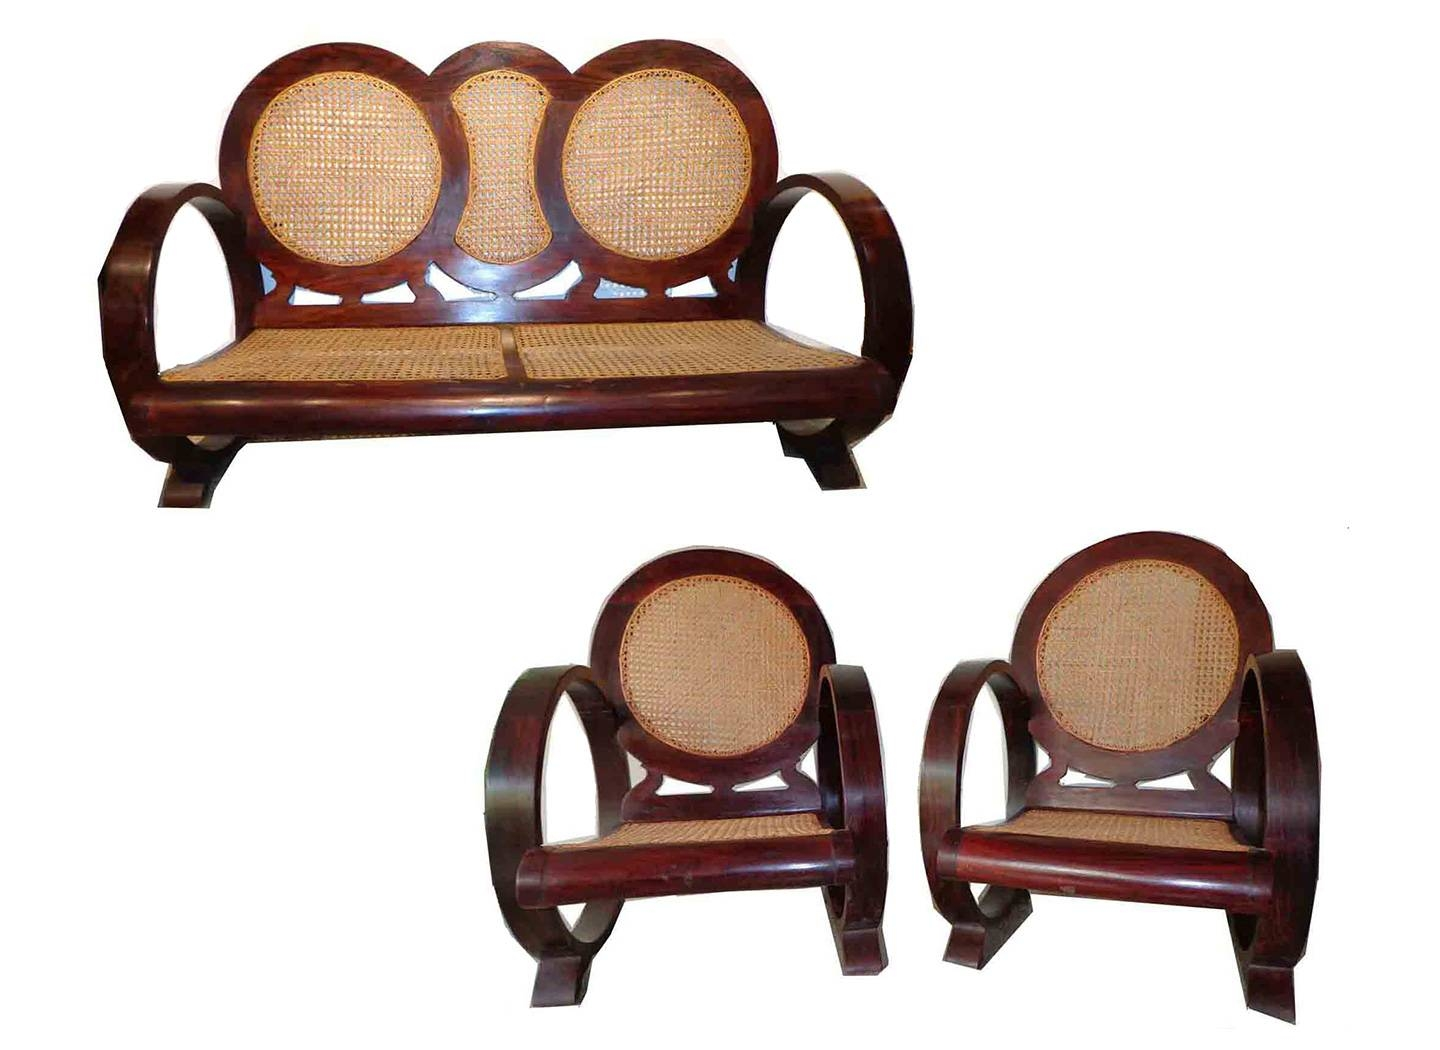 Rosewood Caning Art Deco Sofa Set - Seating, Living Room - Souk within Art Deco Sofa And Chairs (Image 12 of 15)